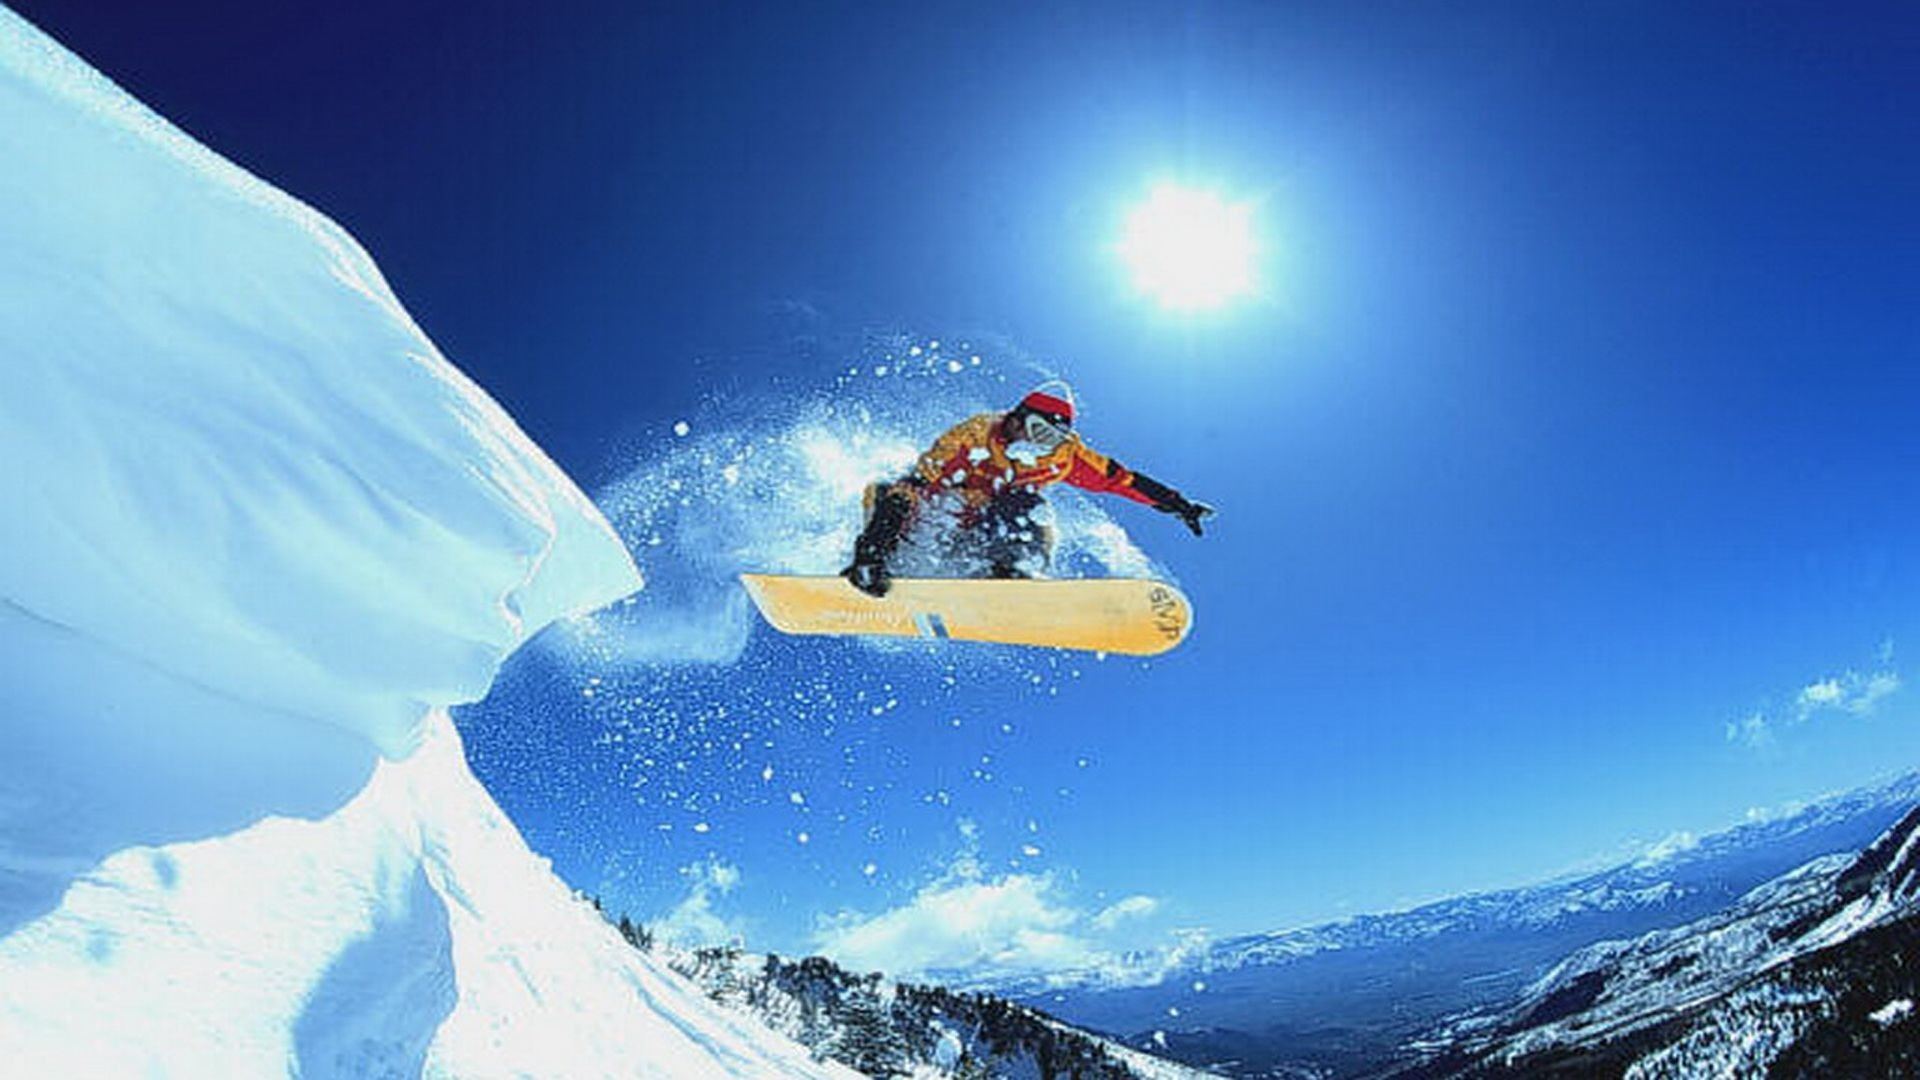 Sport Wallpaper Google: HD Snowboarding Wallpapers (75+ Background Pictures